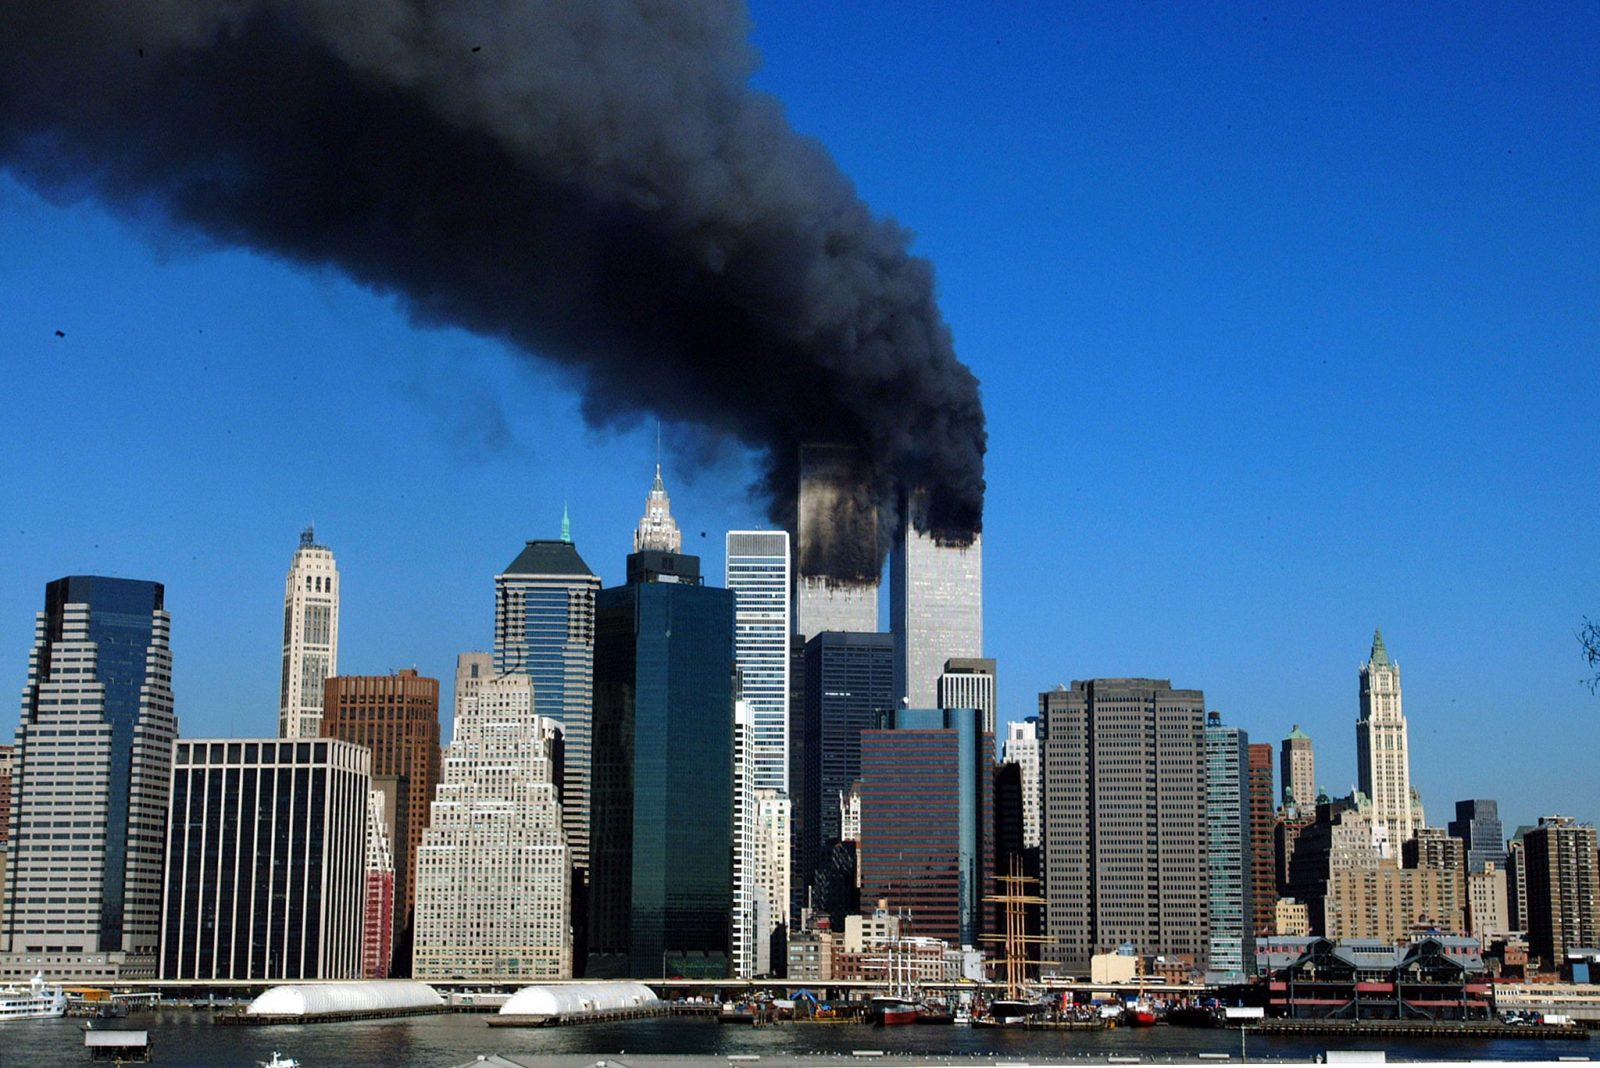 World Trade Center with smoke on September 11, 2001